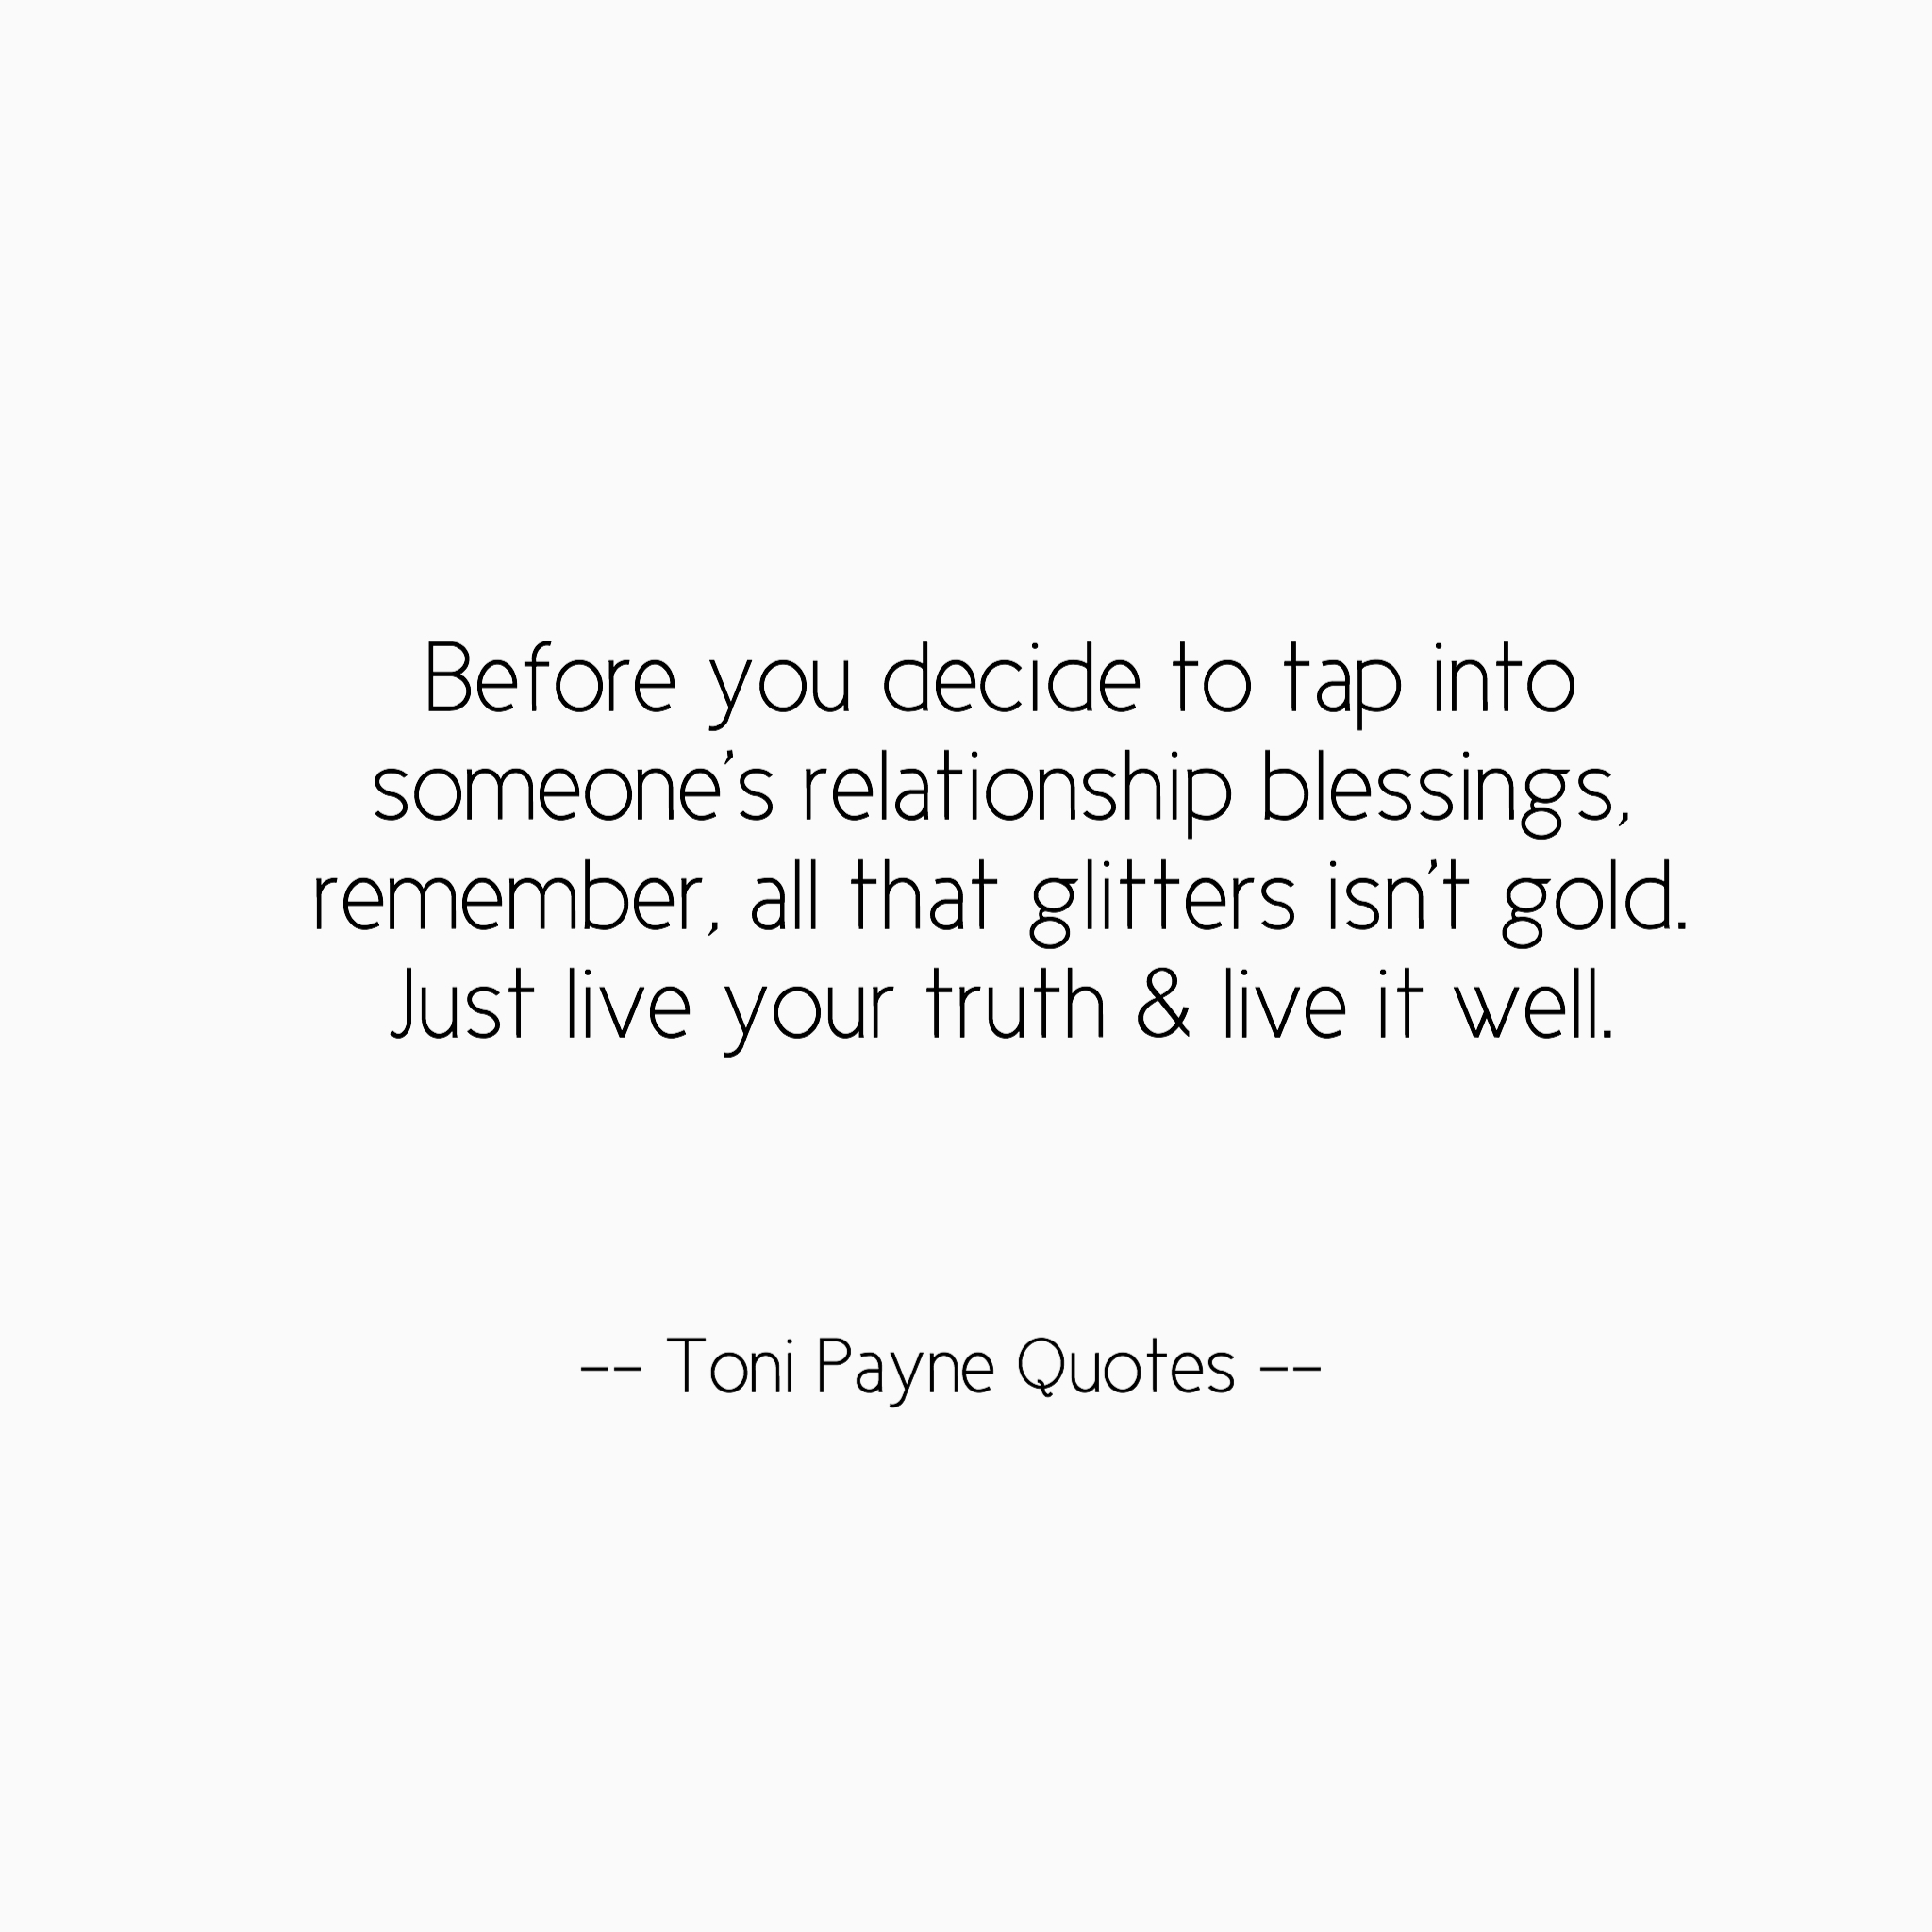 Live Gold Quotes Relationship Quote About Tapping Into Blessings  Toni Payne